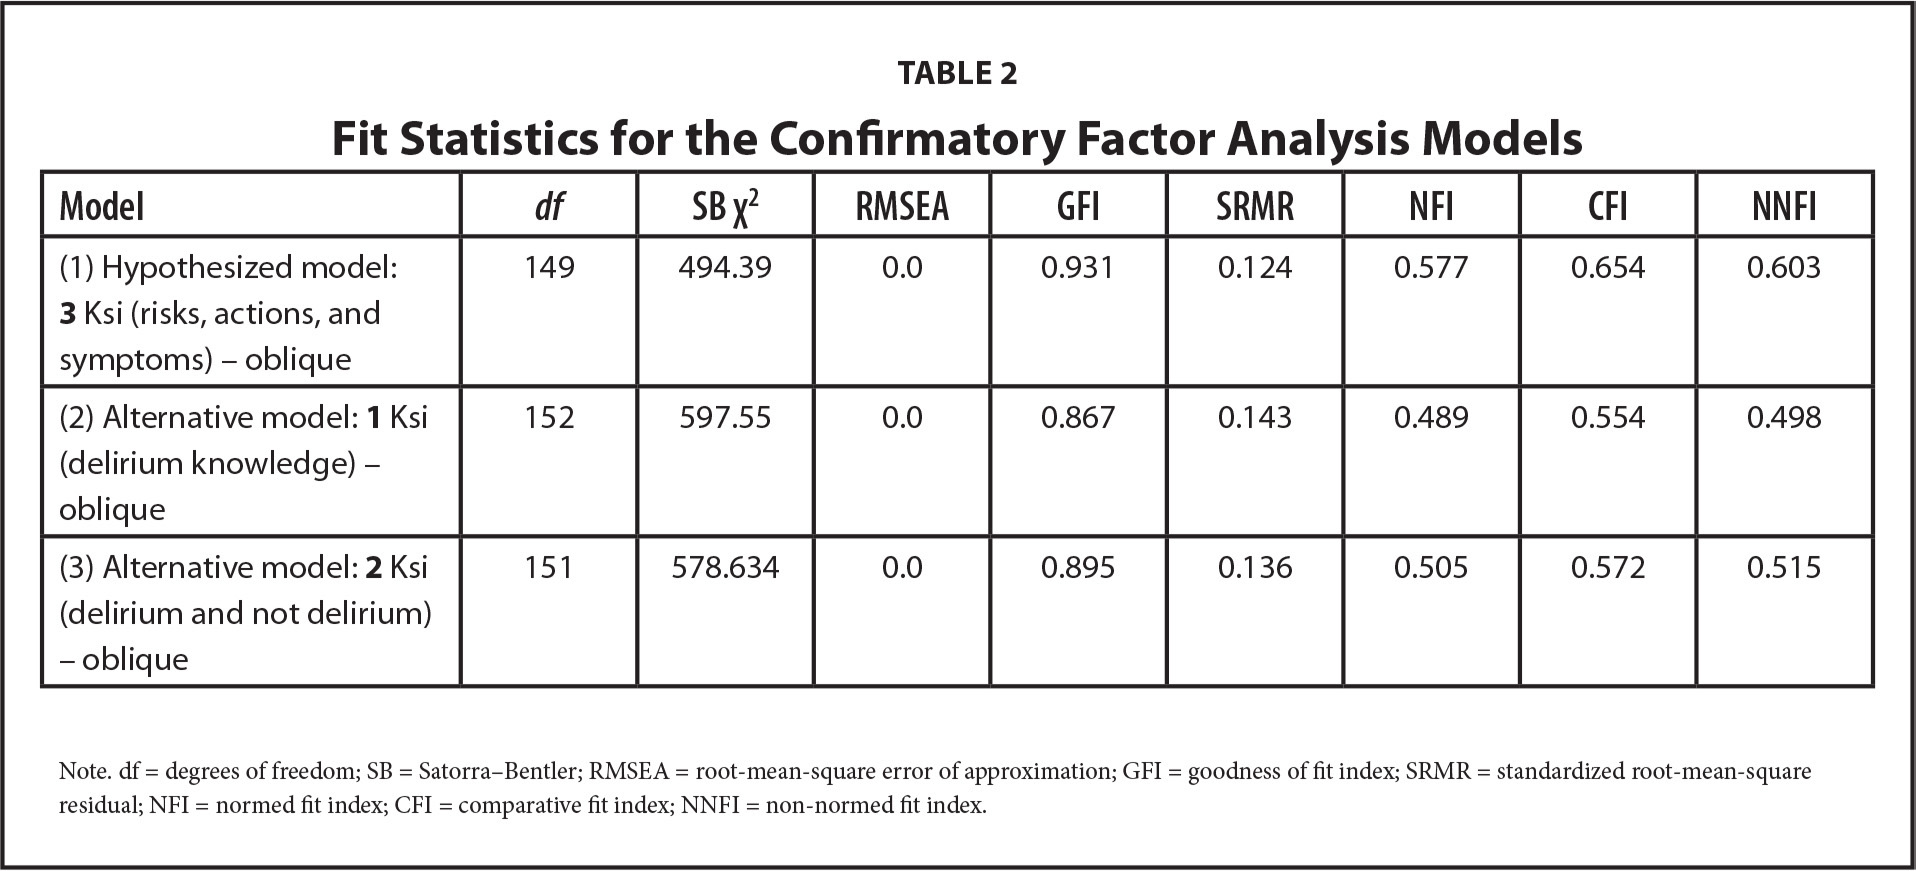 Fit Statistics for the Confirmatory Factor Analysis Models